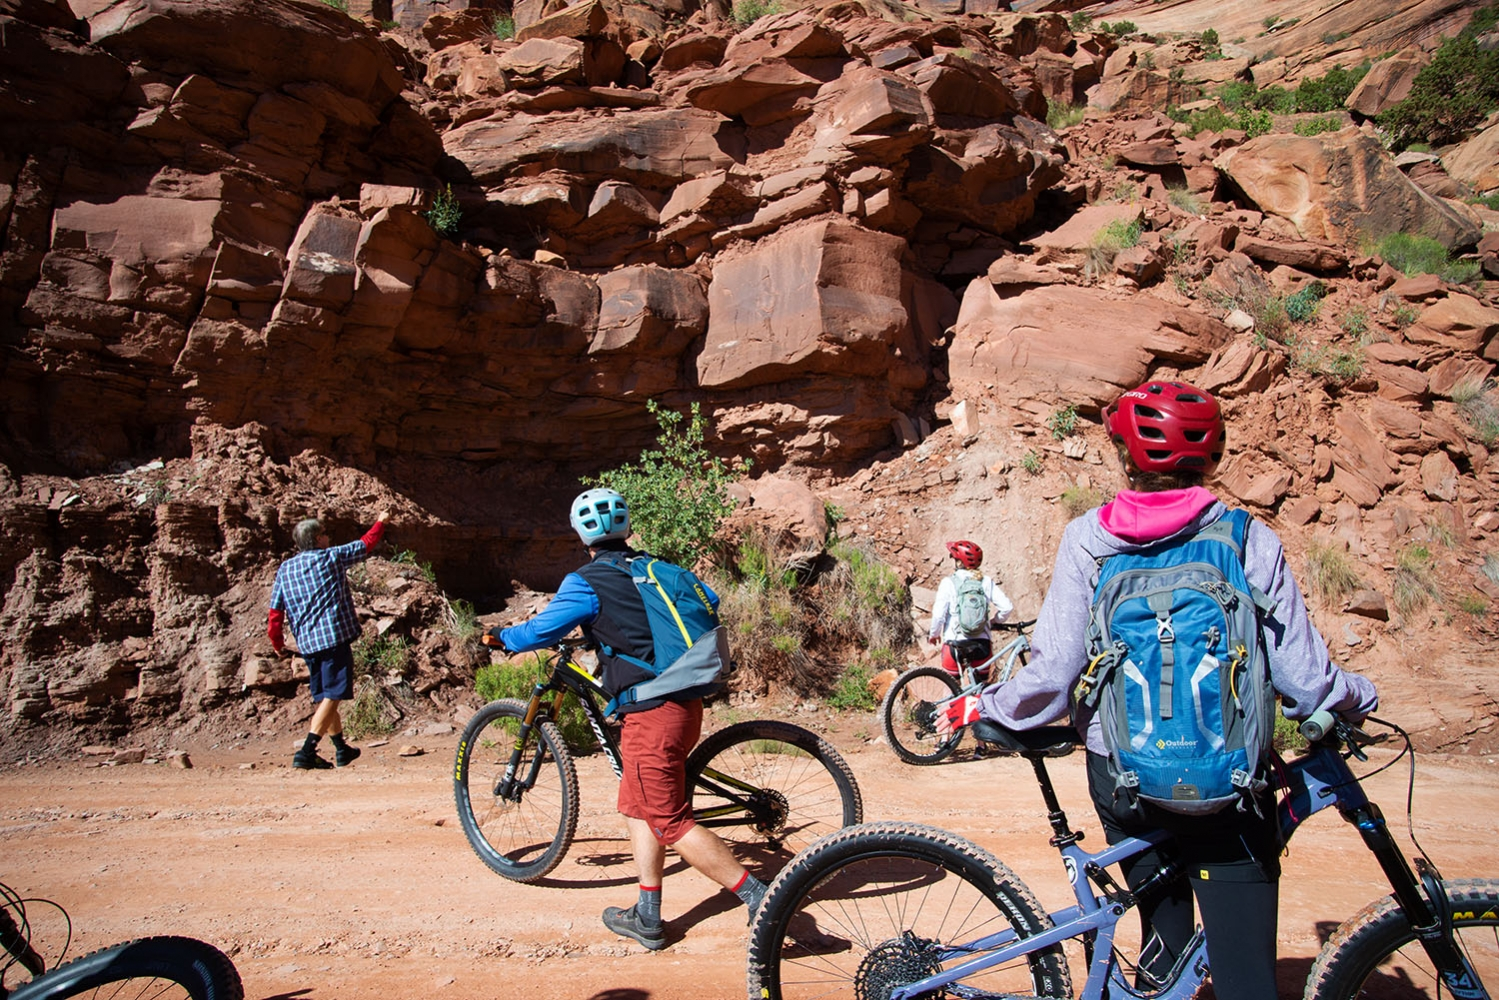 Canyonlands-National-Park-Full-Day-Guided-Mtb-Tour-Pointing-Dinosaur-Fossils